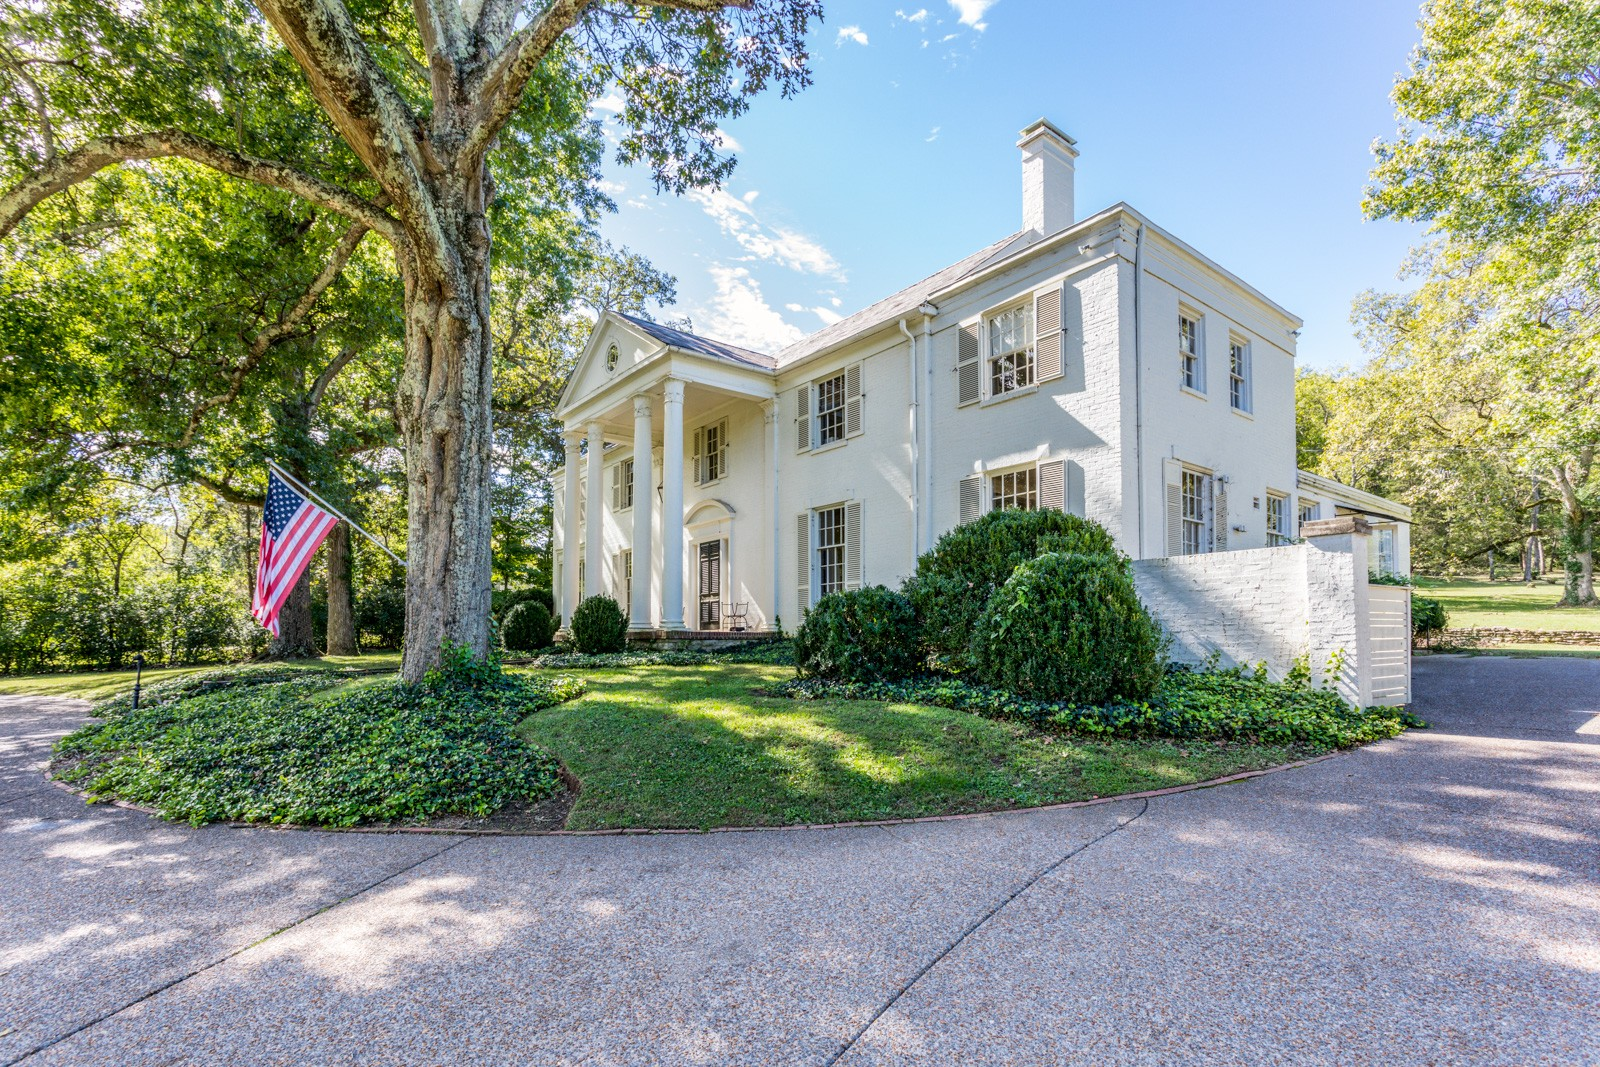 1317 Chickering Rd, Nashville, TN 37215 - Nashville, TN real estate listing